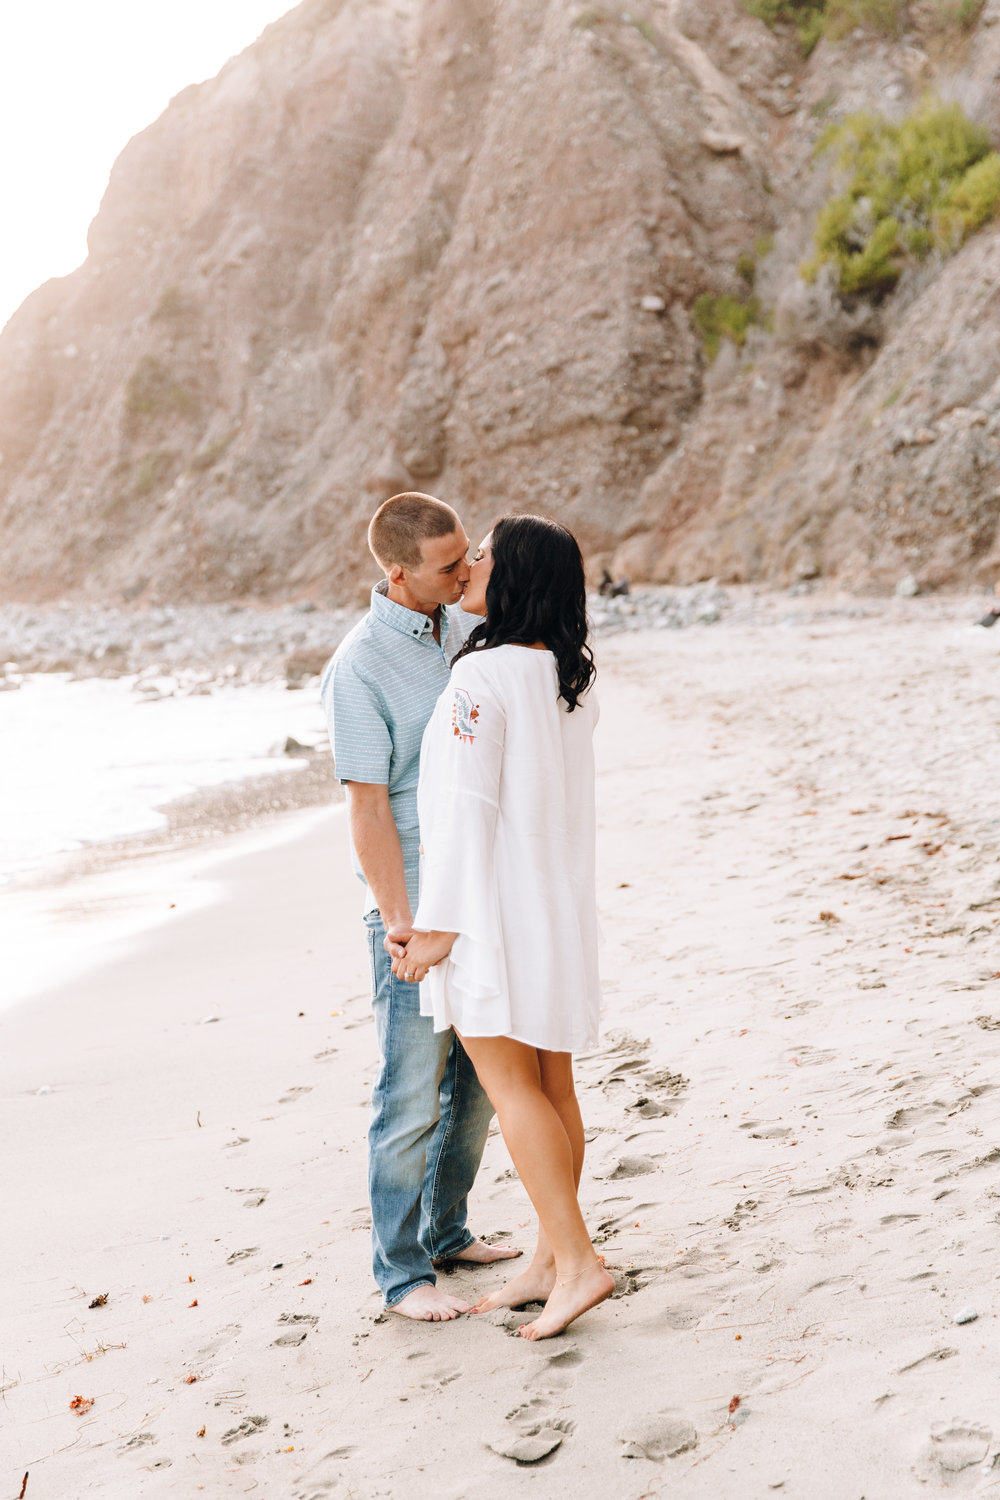 OC ENGAGEMENT PHOTOGRAPHER, SOUTHERN CALIFORNIA ENGAGEMENT PHOTOGRAPHER, ORANGE COUNTY ENGAGEMENT PHOTOGRAPHER, SOCAL ENGAGEMENT PHOTOGRAPHER, LAGUNA BEACH ENGAGEMENT PHOTOGRAPHER, LAGUNA ENGAGEMENT